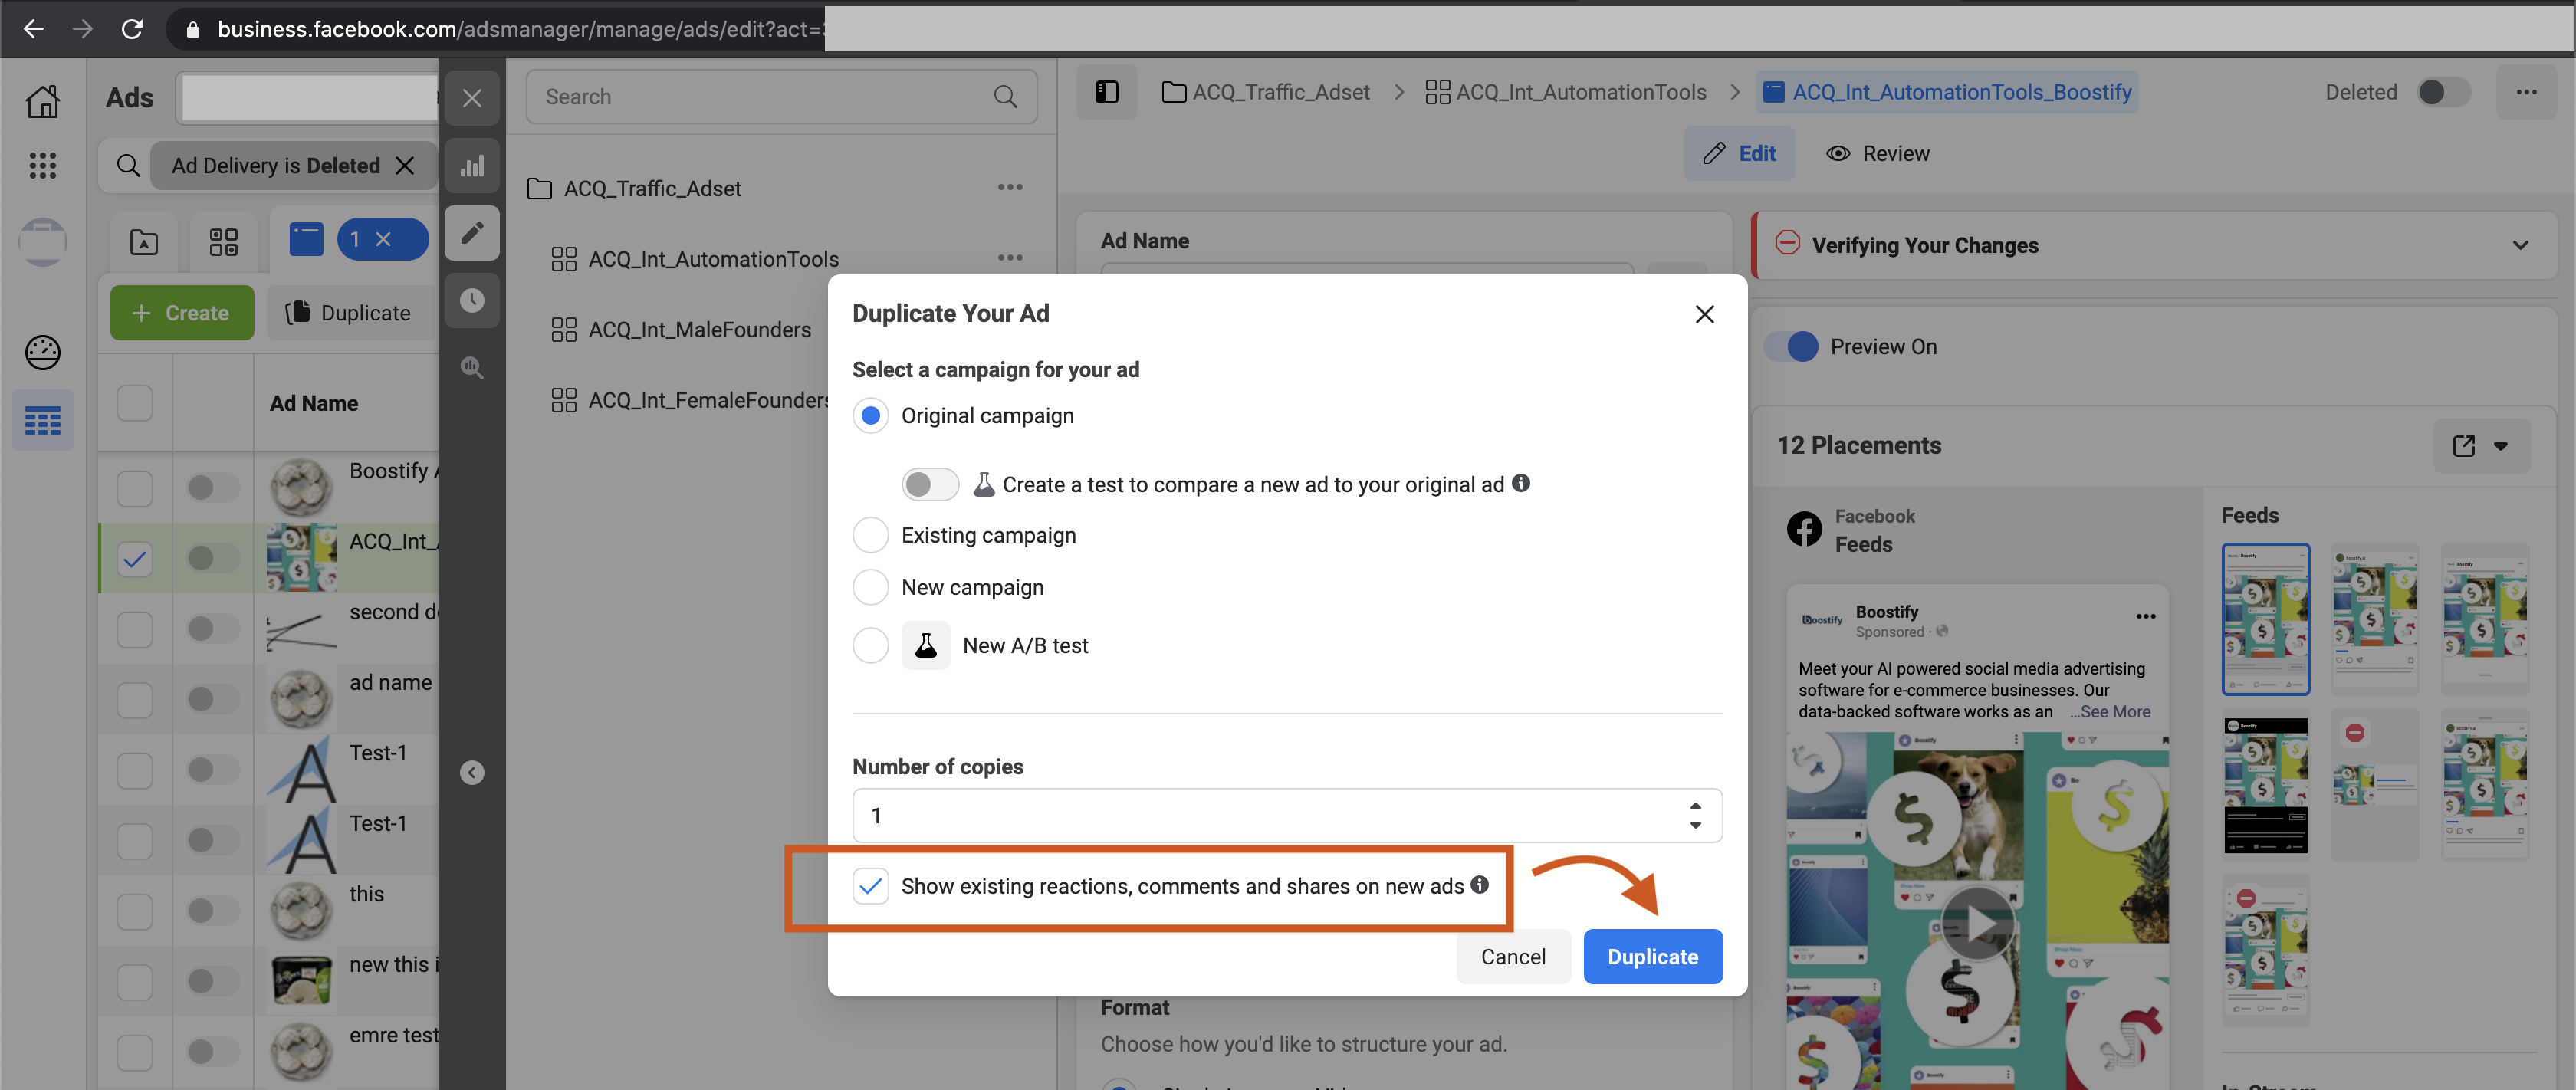 copy existing comments interactions on facebook ad